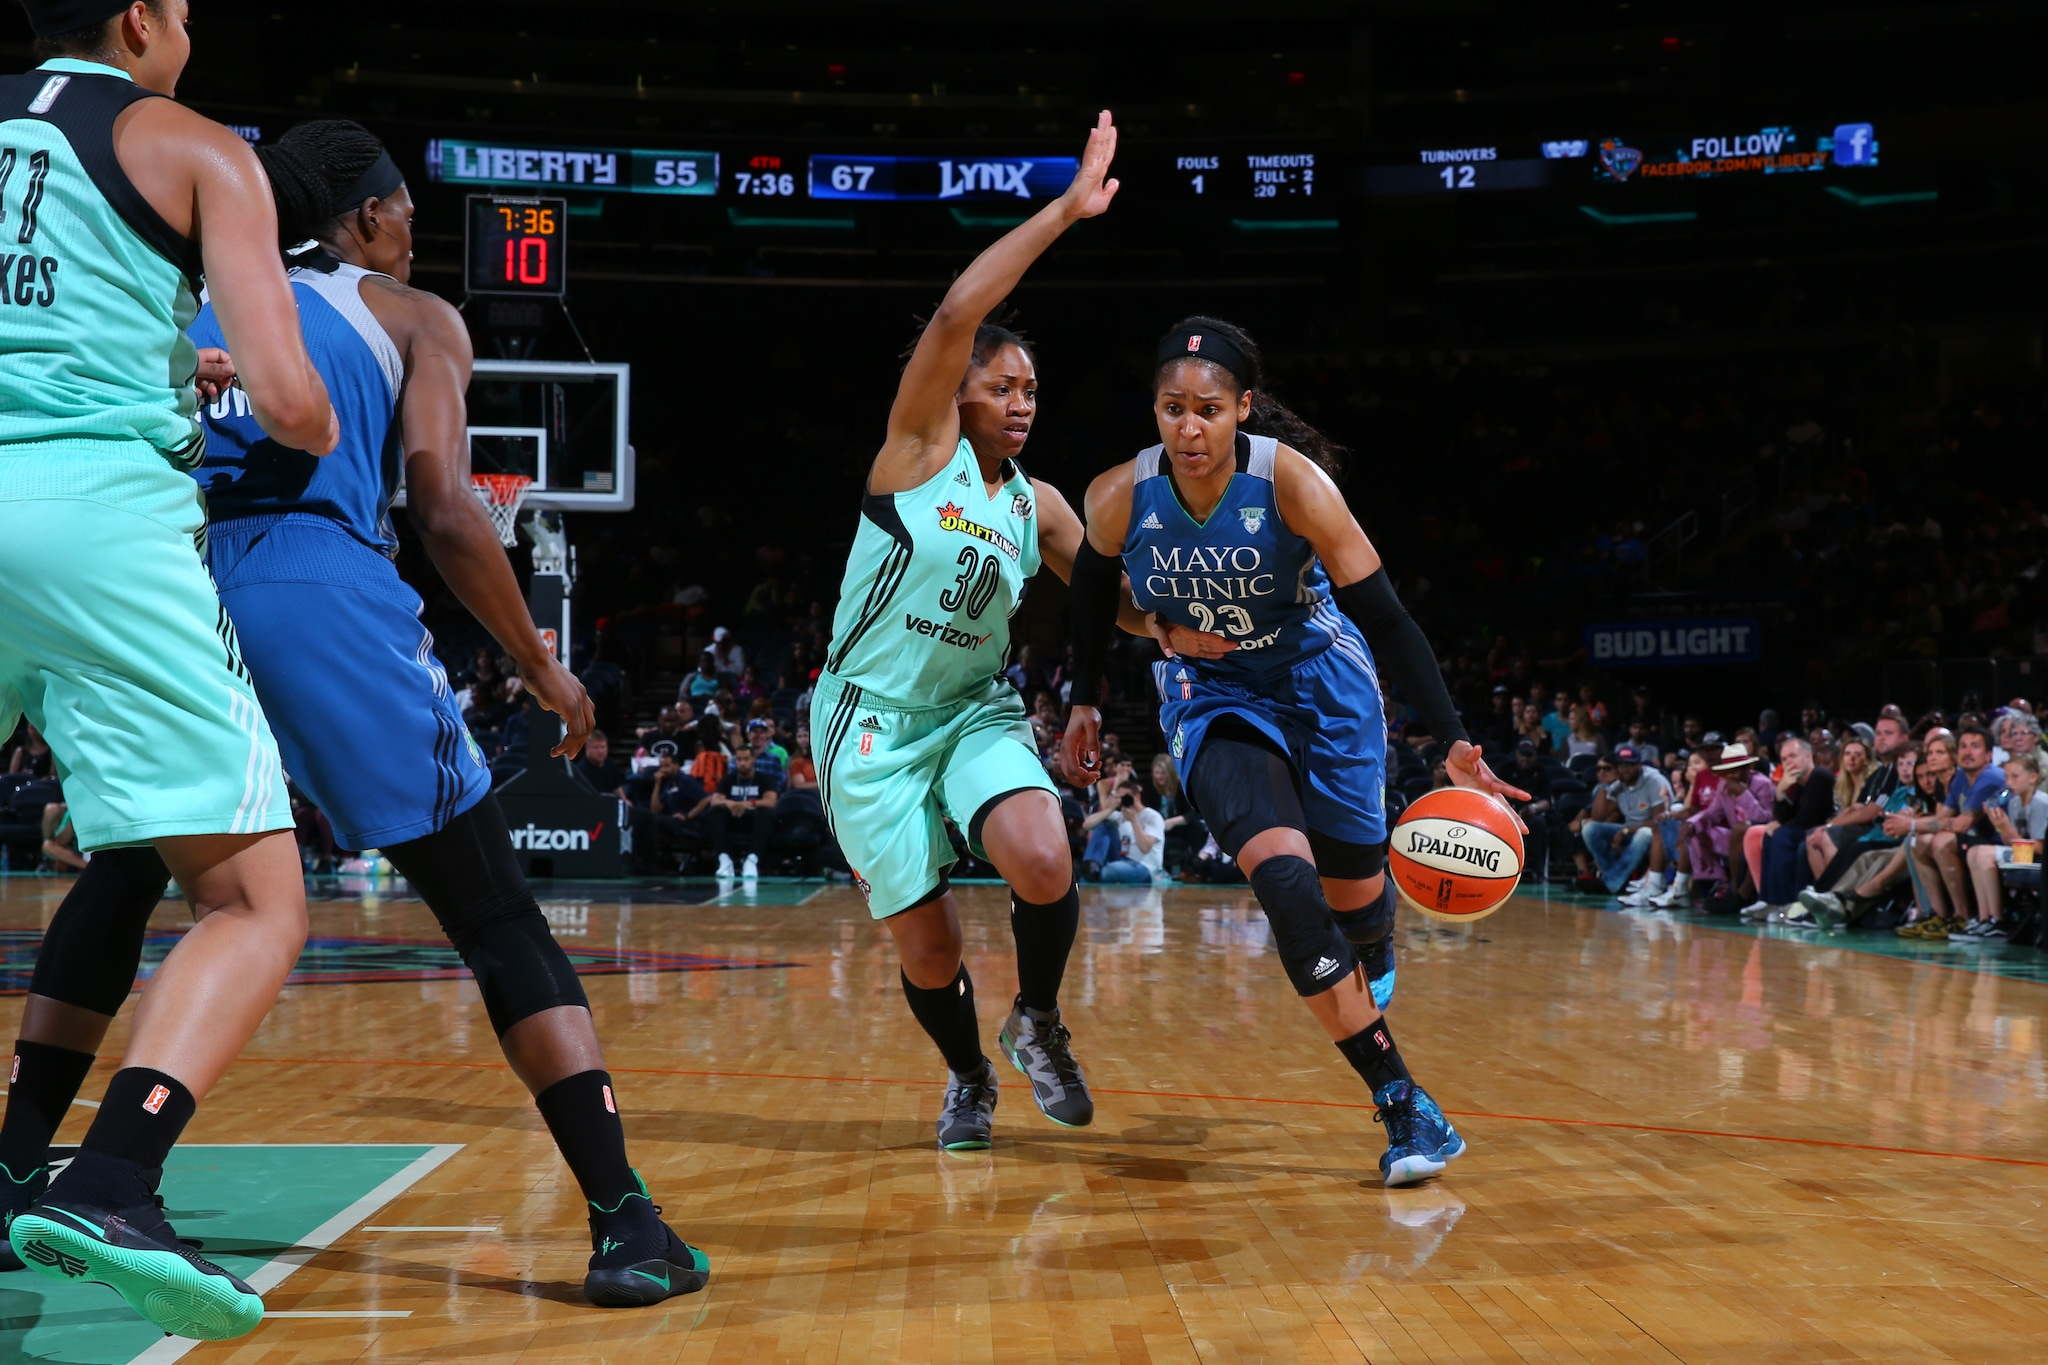 NEW YORK, NY - MAY 31: Maya Moore #23 of the Minnesota Lynx drives to the basket against the New York Liberty during the game on May 31, 2016 at Madison Square Garden in New York, New York. NOTE TO USER: User expressly acknowledges and agrees that, by downloading and or using this Photograph, user is consenting to the terms and conditions of the Getty Images License Agreement. Mandatory Copyright Notice: Copyright 2016 NBAE (Photo by Mike Stobe/NBAE via Getty Images)